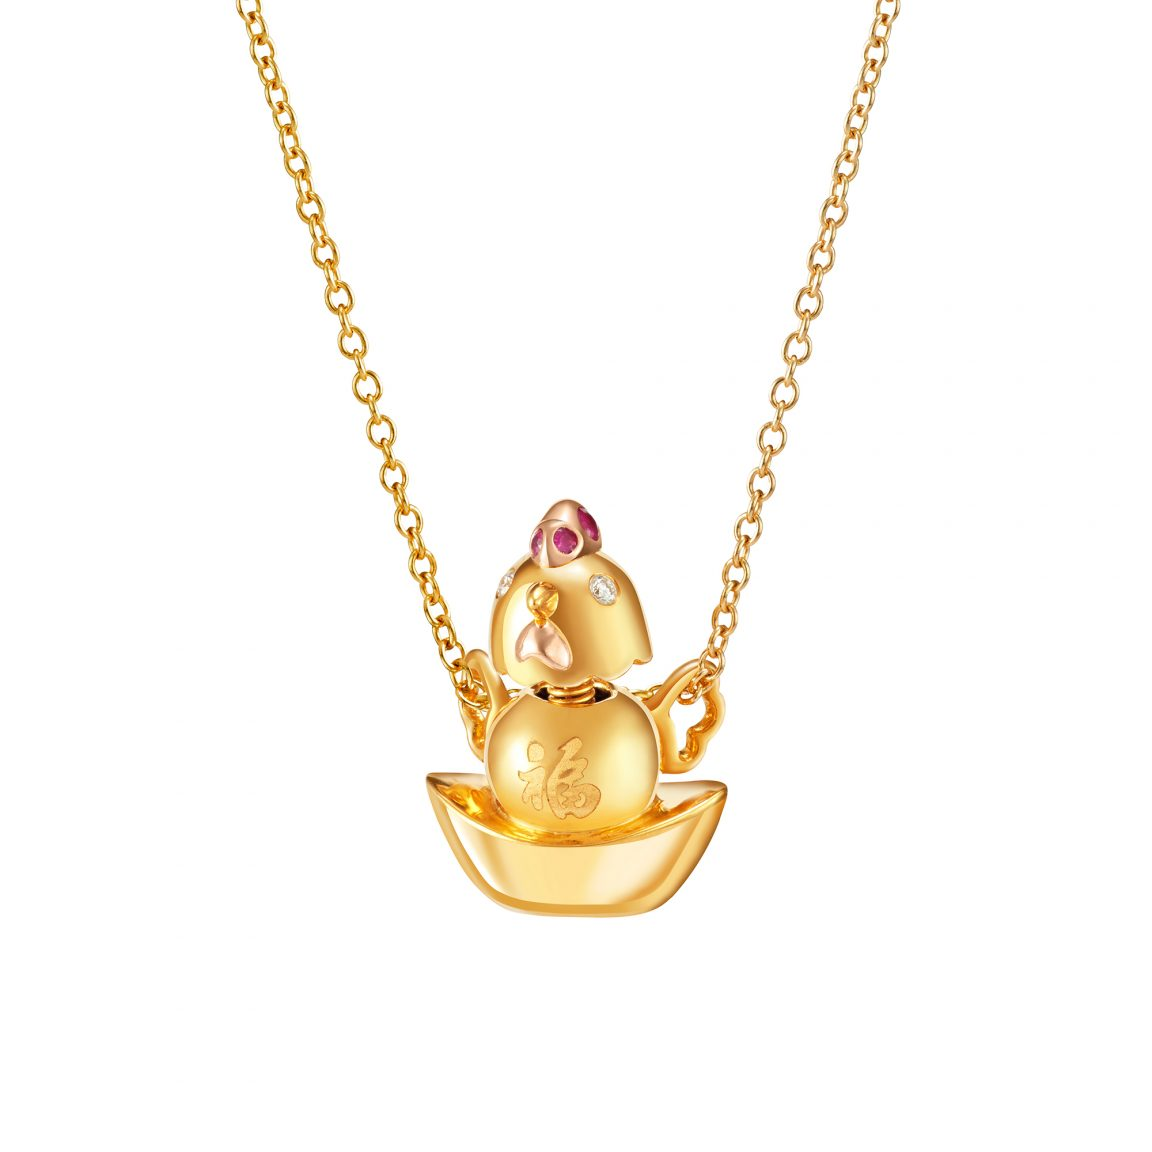 Curious Chick Gold Pendant